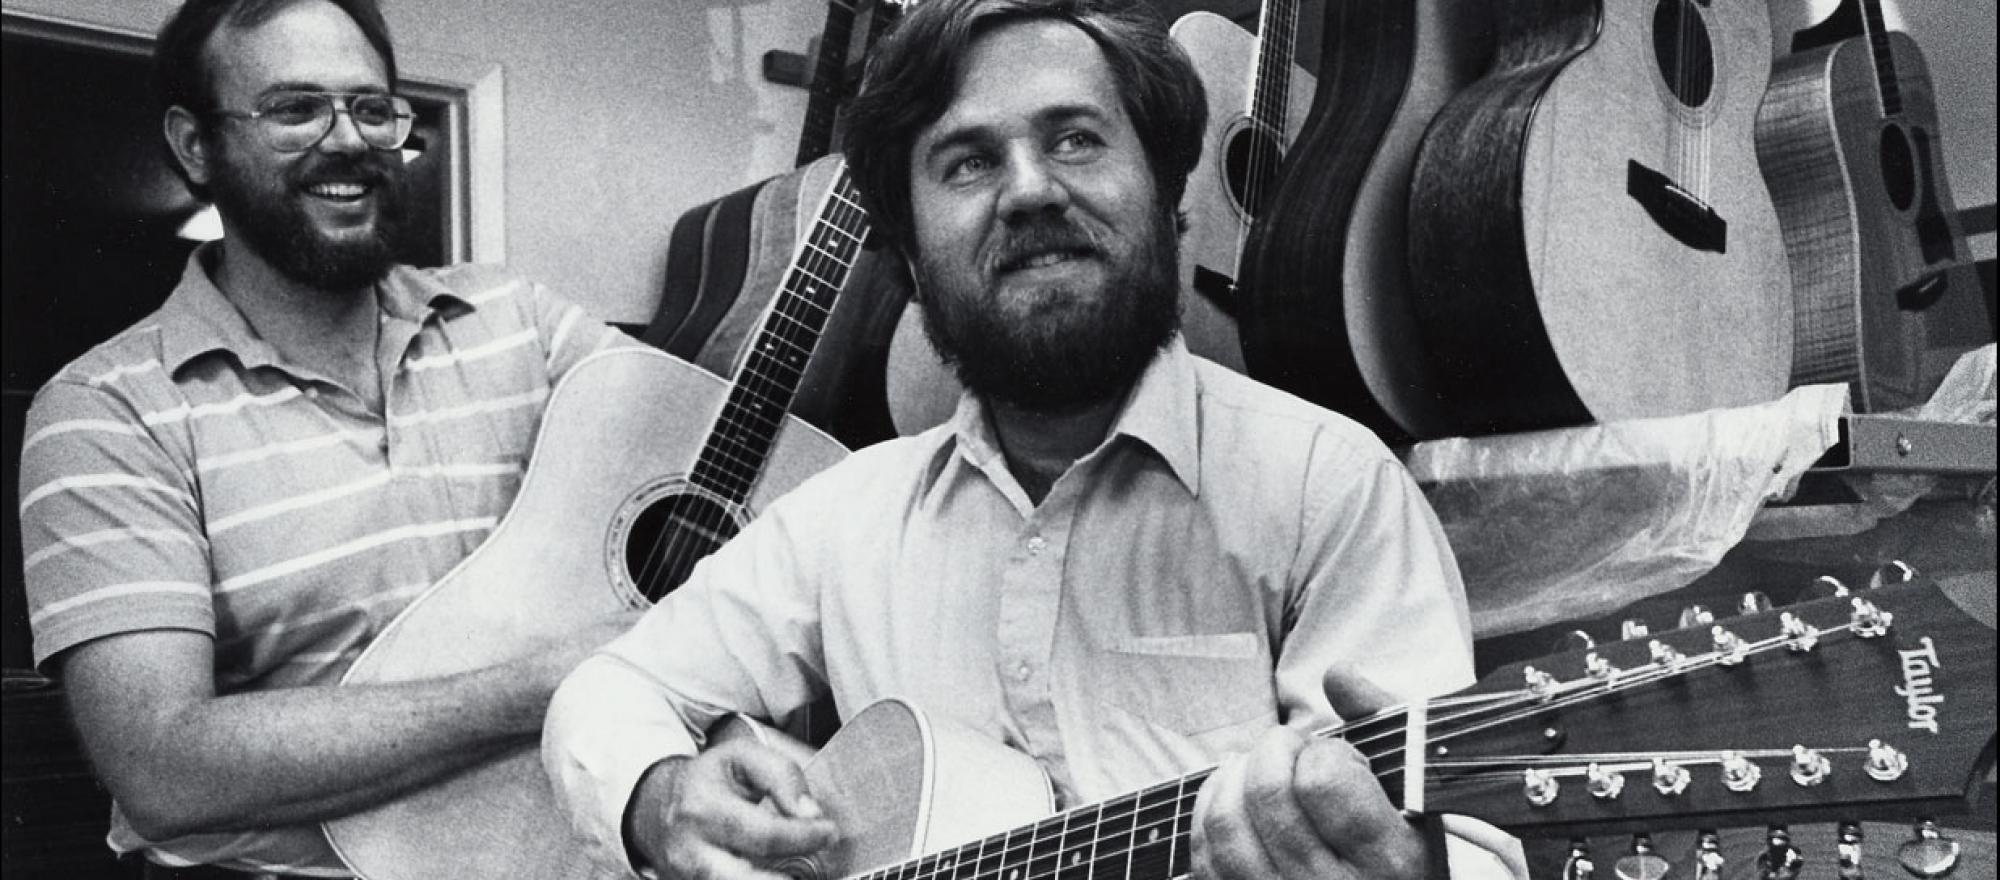 Bob Taylor (left) and Kurt Listug, shown here in 1985, launched their guitar-building business more than 40 years ago.